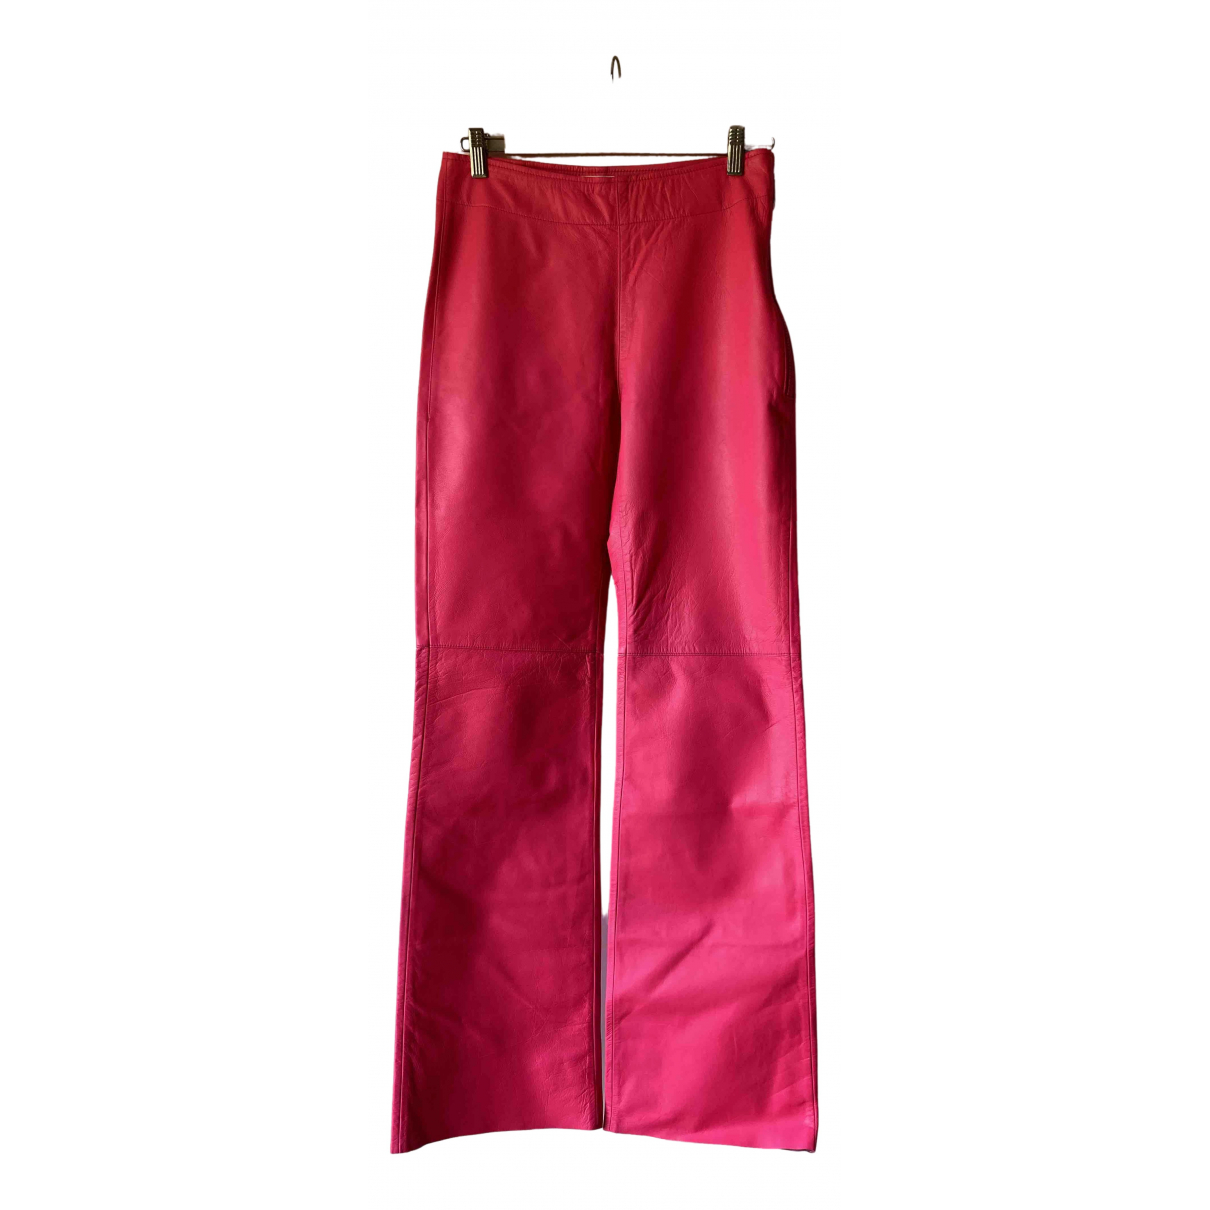 H&m Studio \N Pink Leather Trousers for Women 38 FR